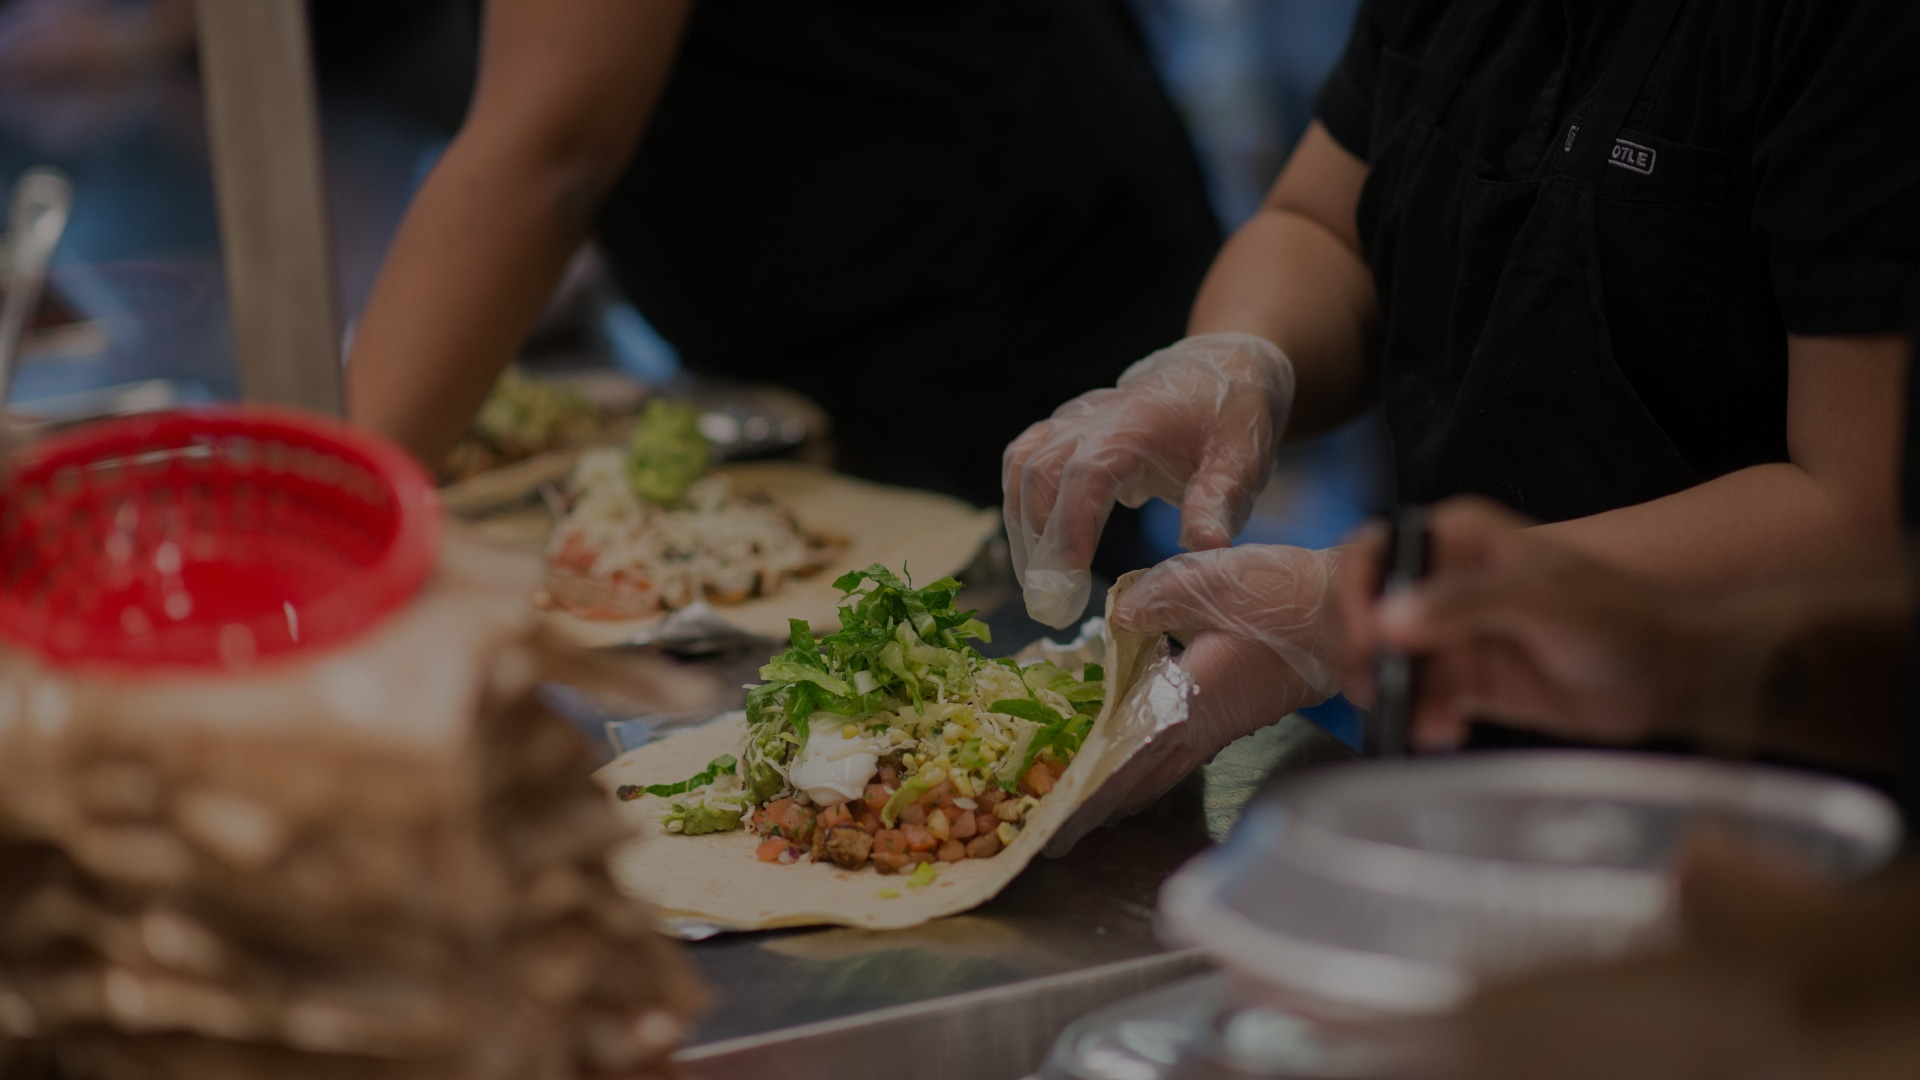 Chipotle Employee making burrito